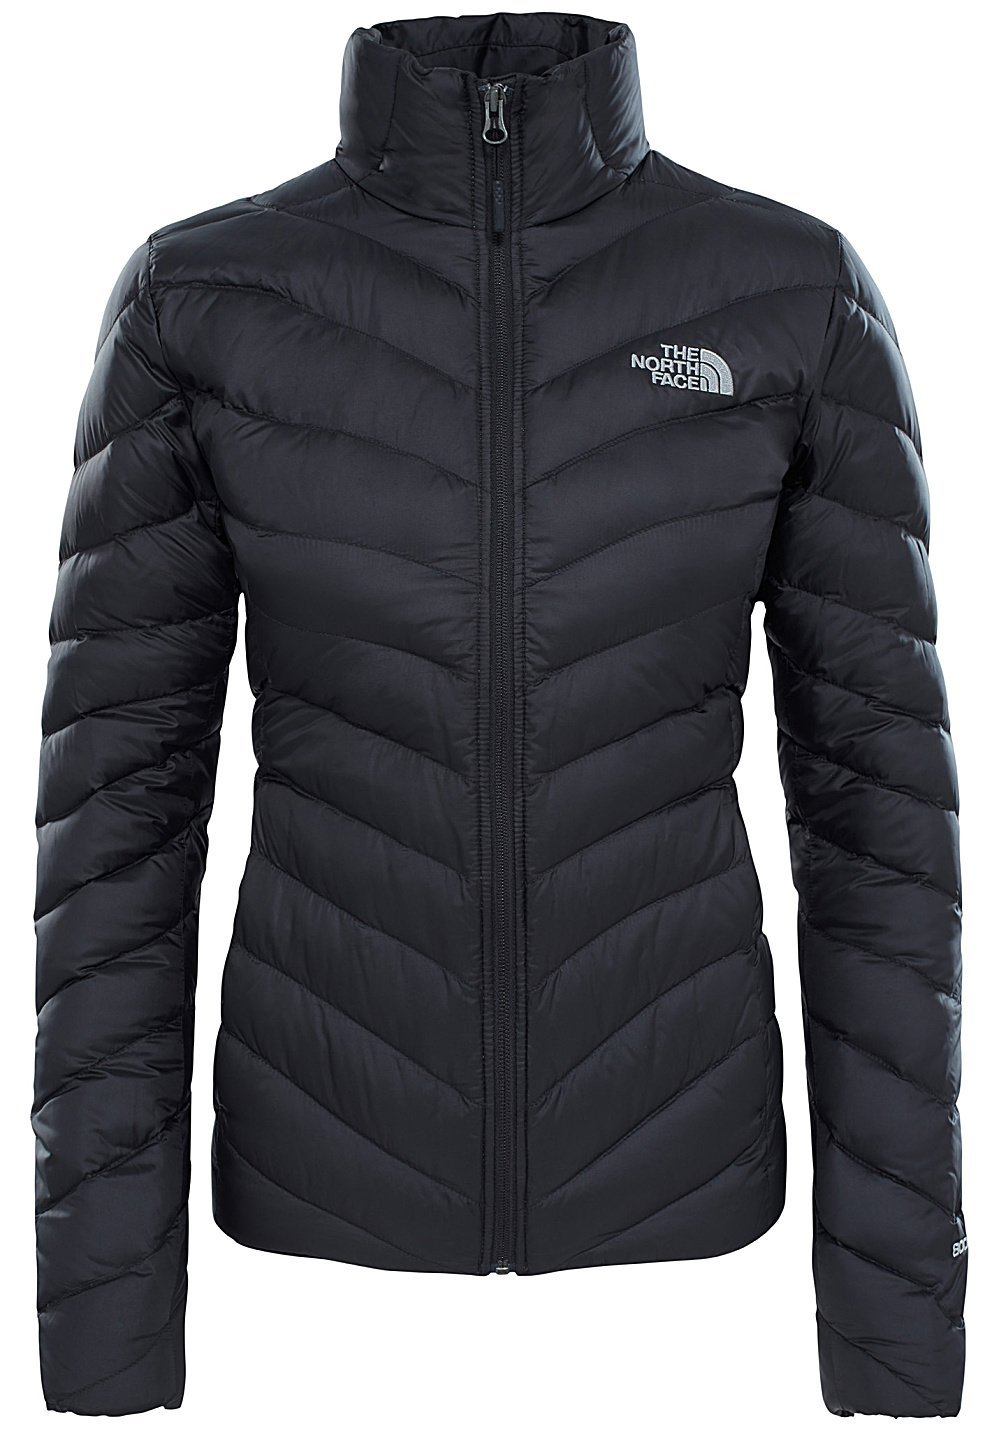 The North Face W Jkt Chaqueta Trevail, Mujer